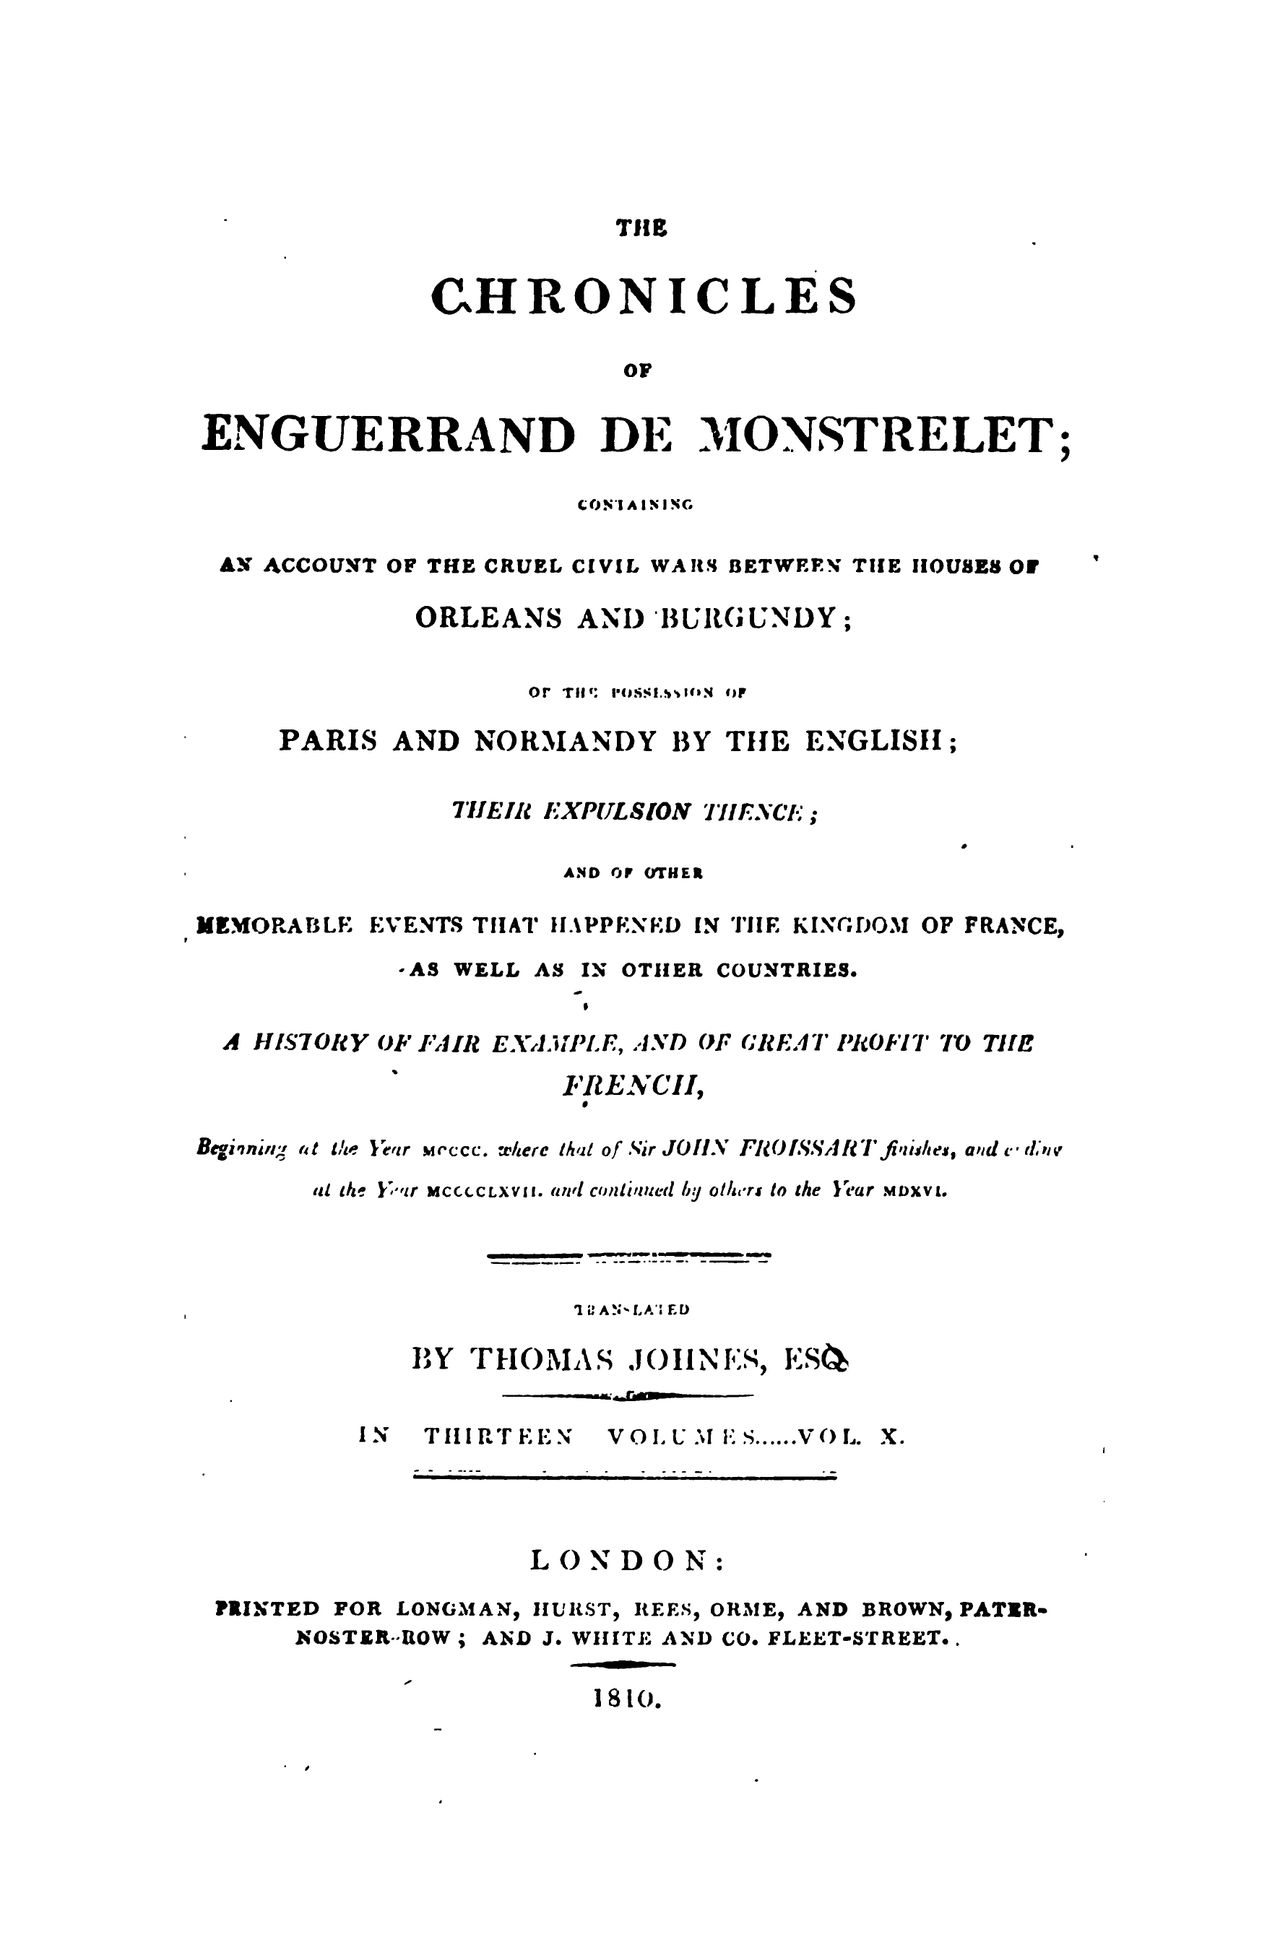 Enguerrand de Monstrelet chronicle vol.10